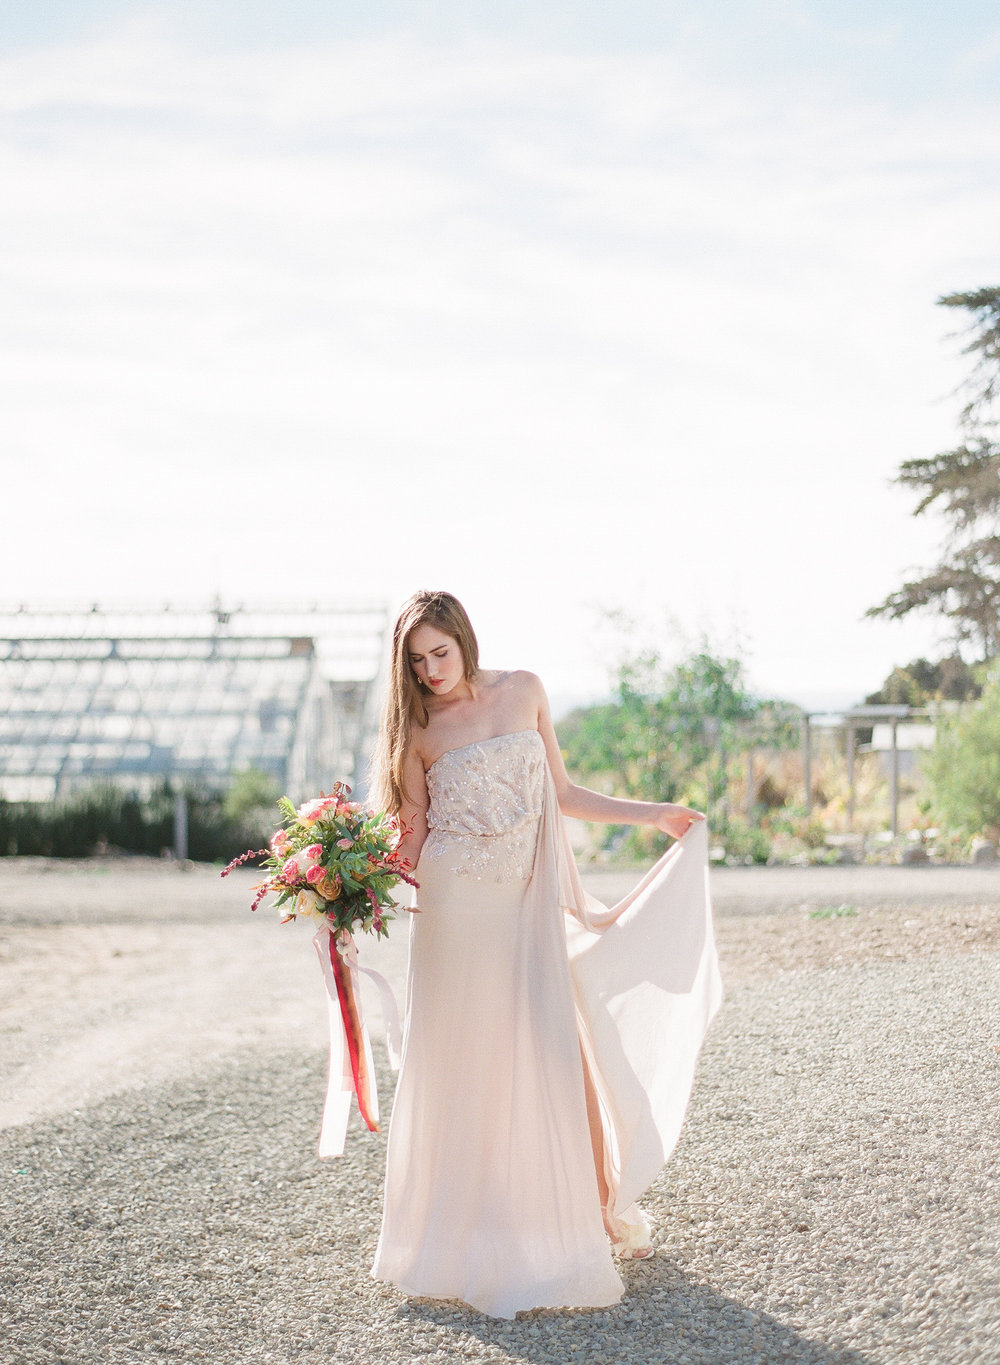 www.santabarbarawedding.com | Megan Sorel Photography | Dos Pueblos Orchid Farm | Bride